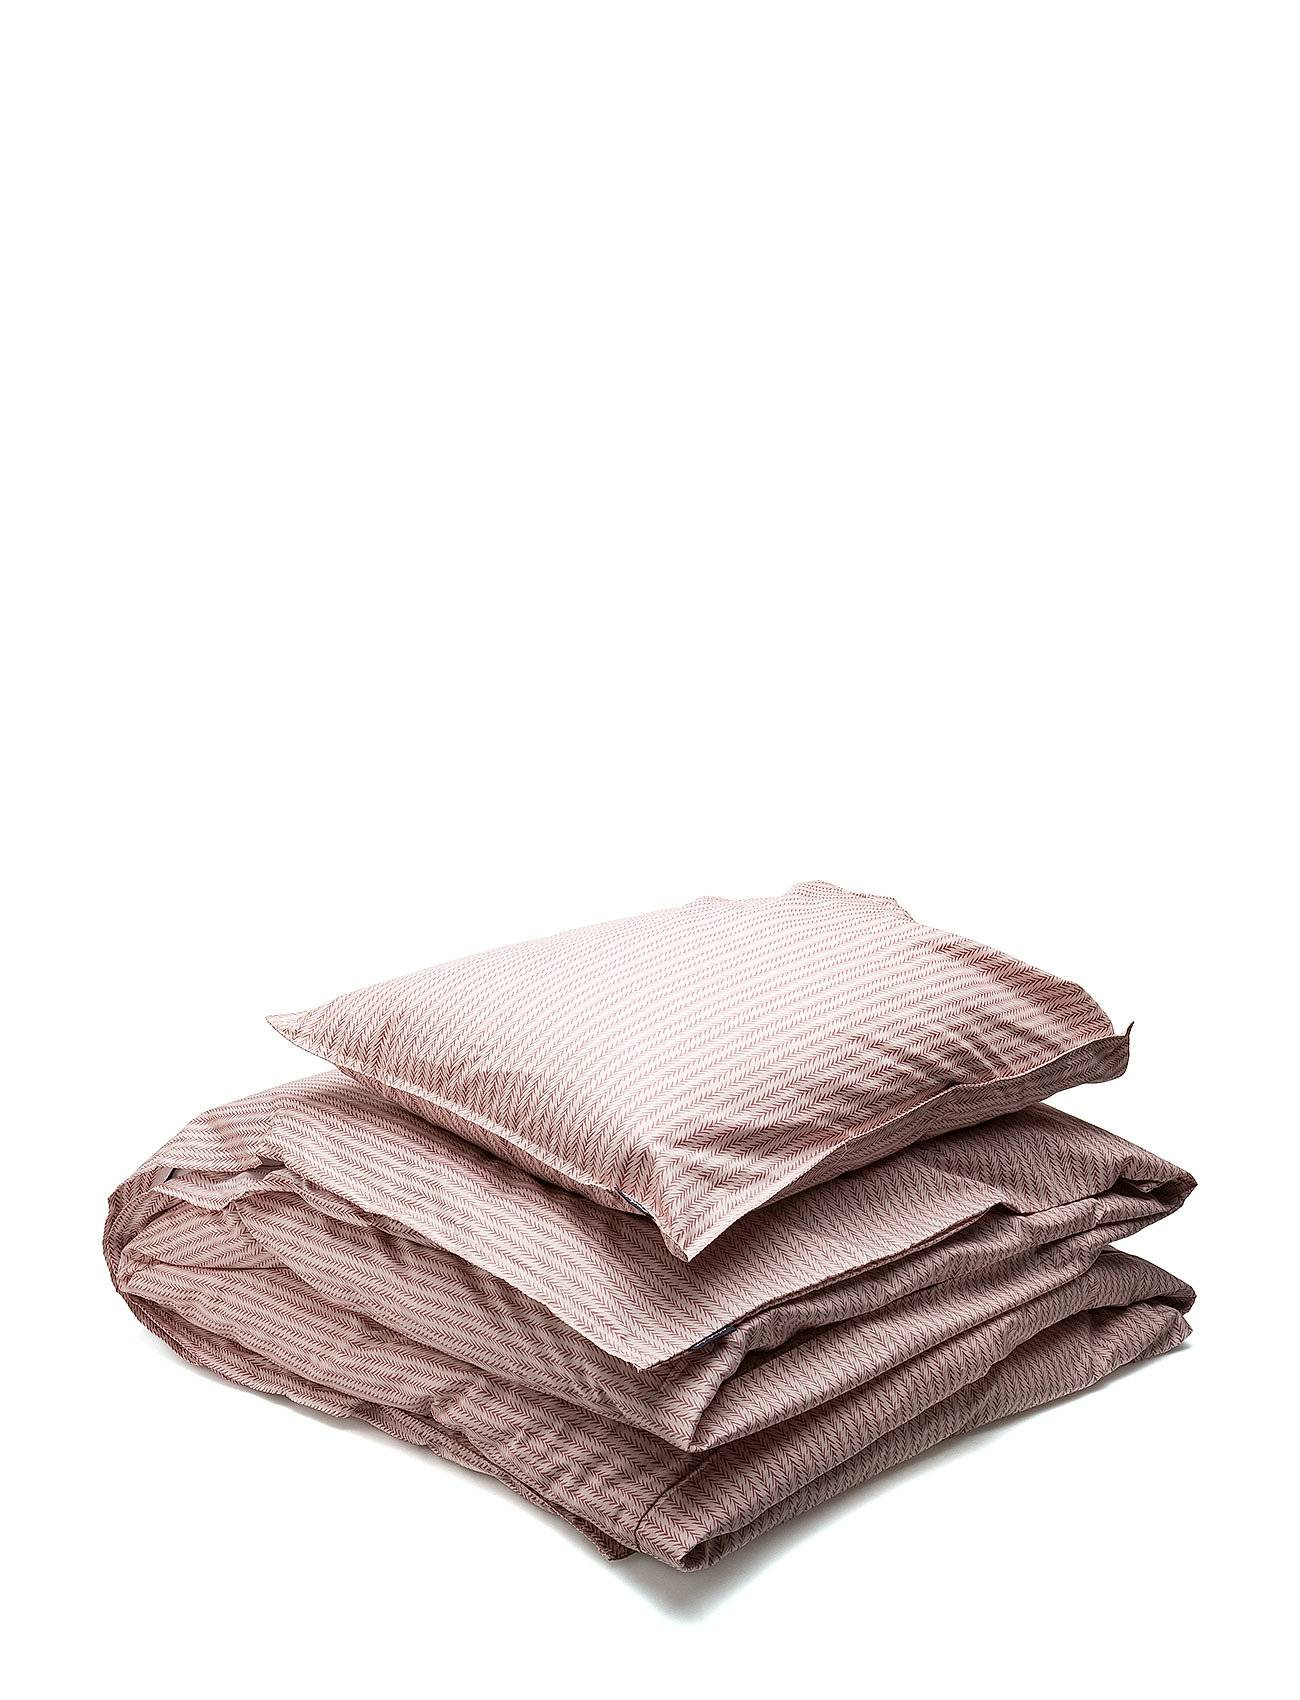 Gripsholm Bed Set Percale Lydia